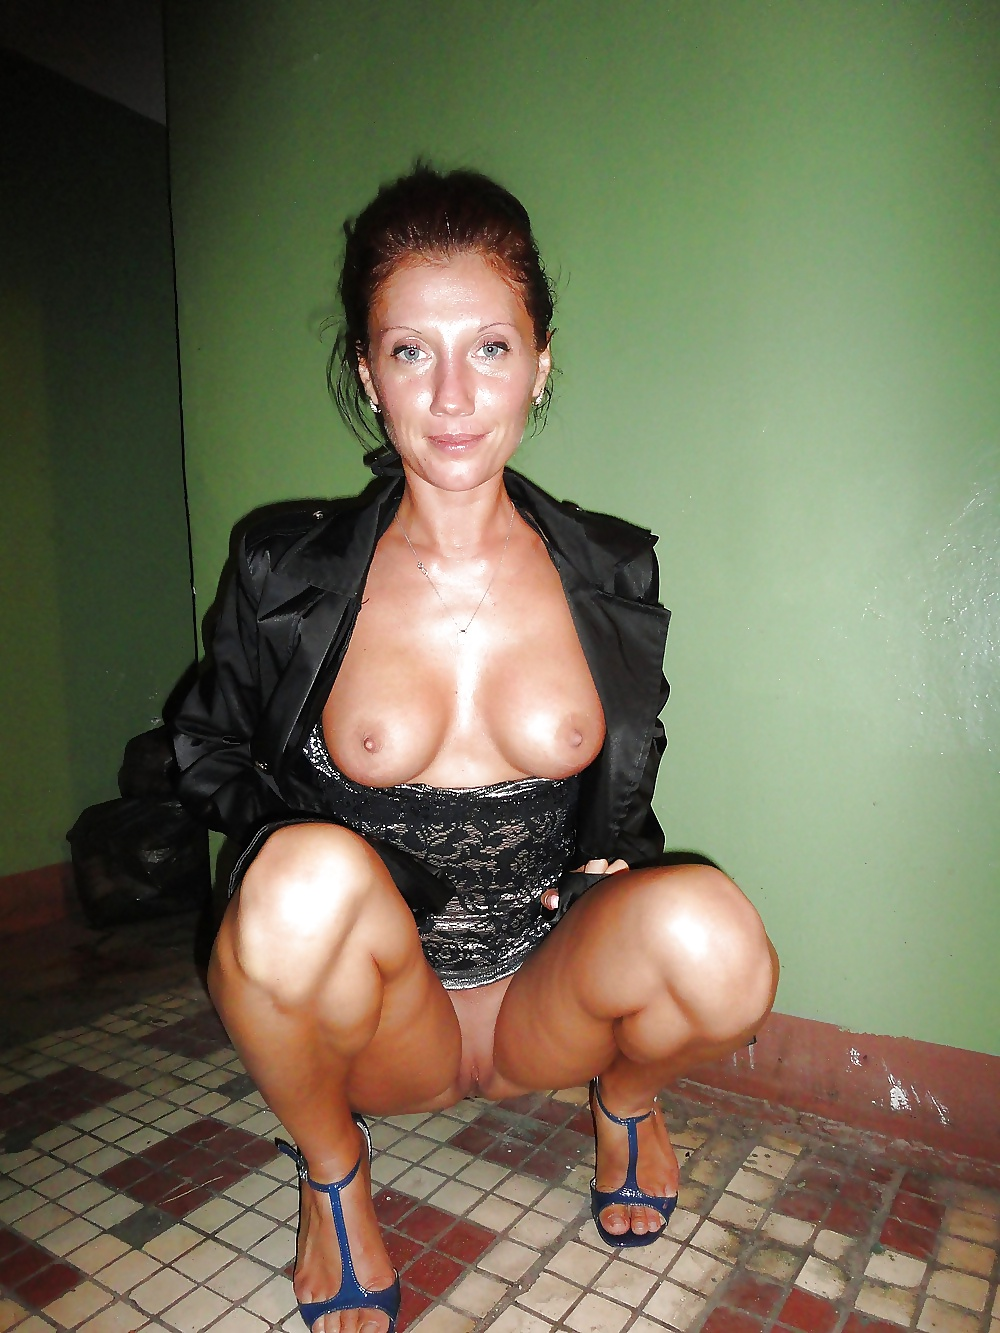 Best Milf Pics  Sexy and Hot Milf Moms Free Picture Galleries